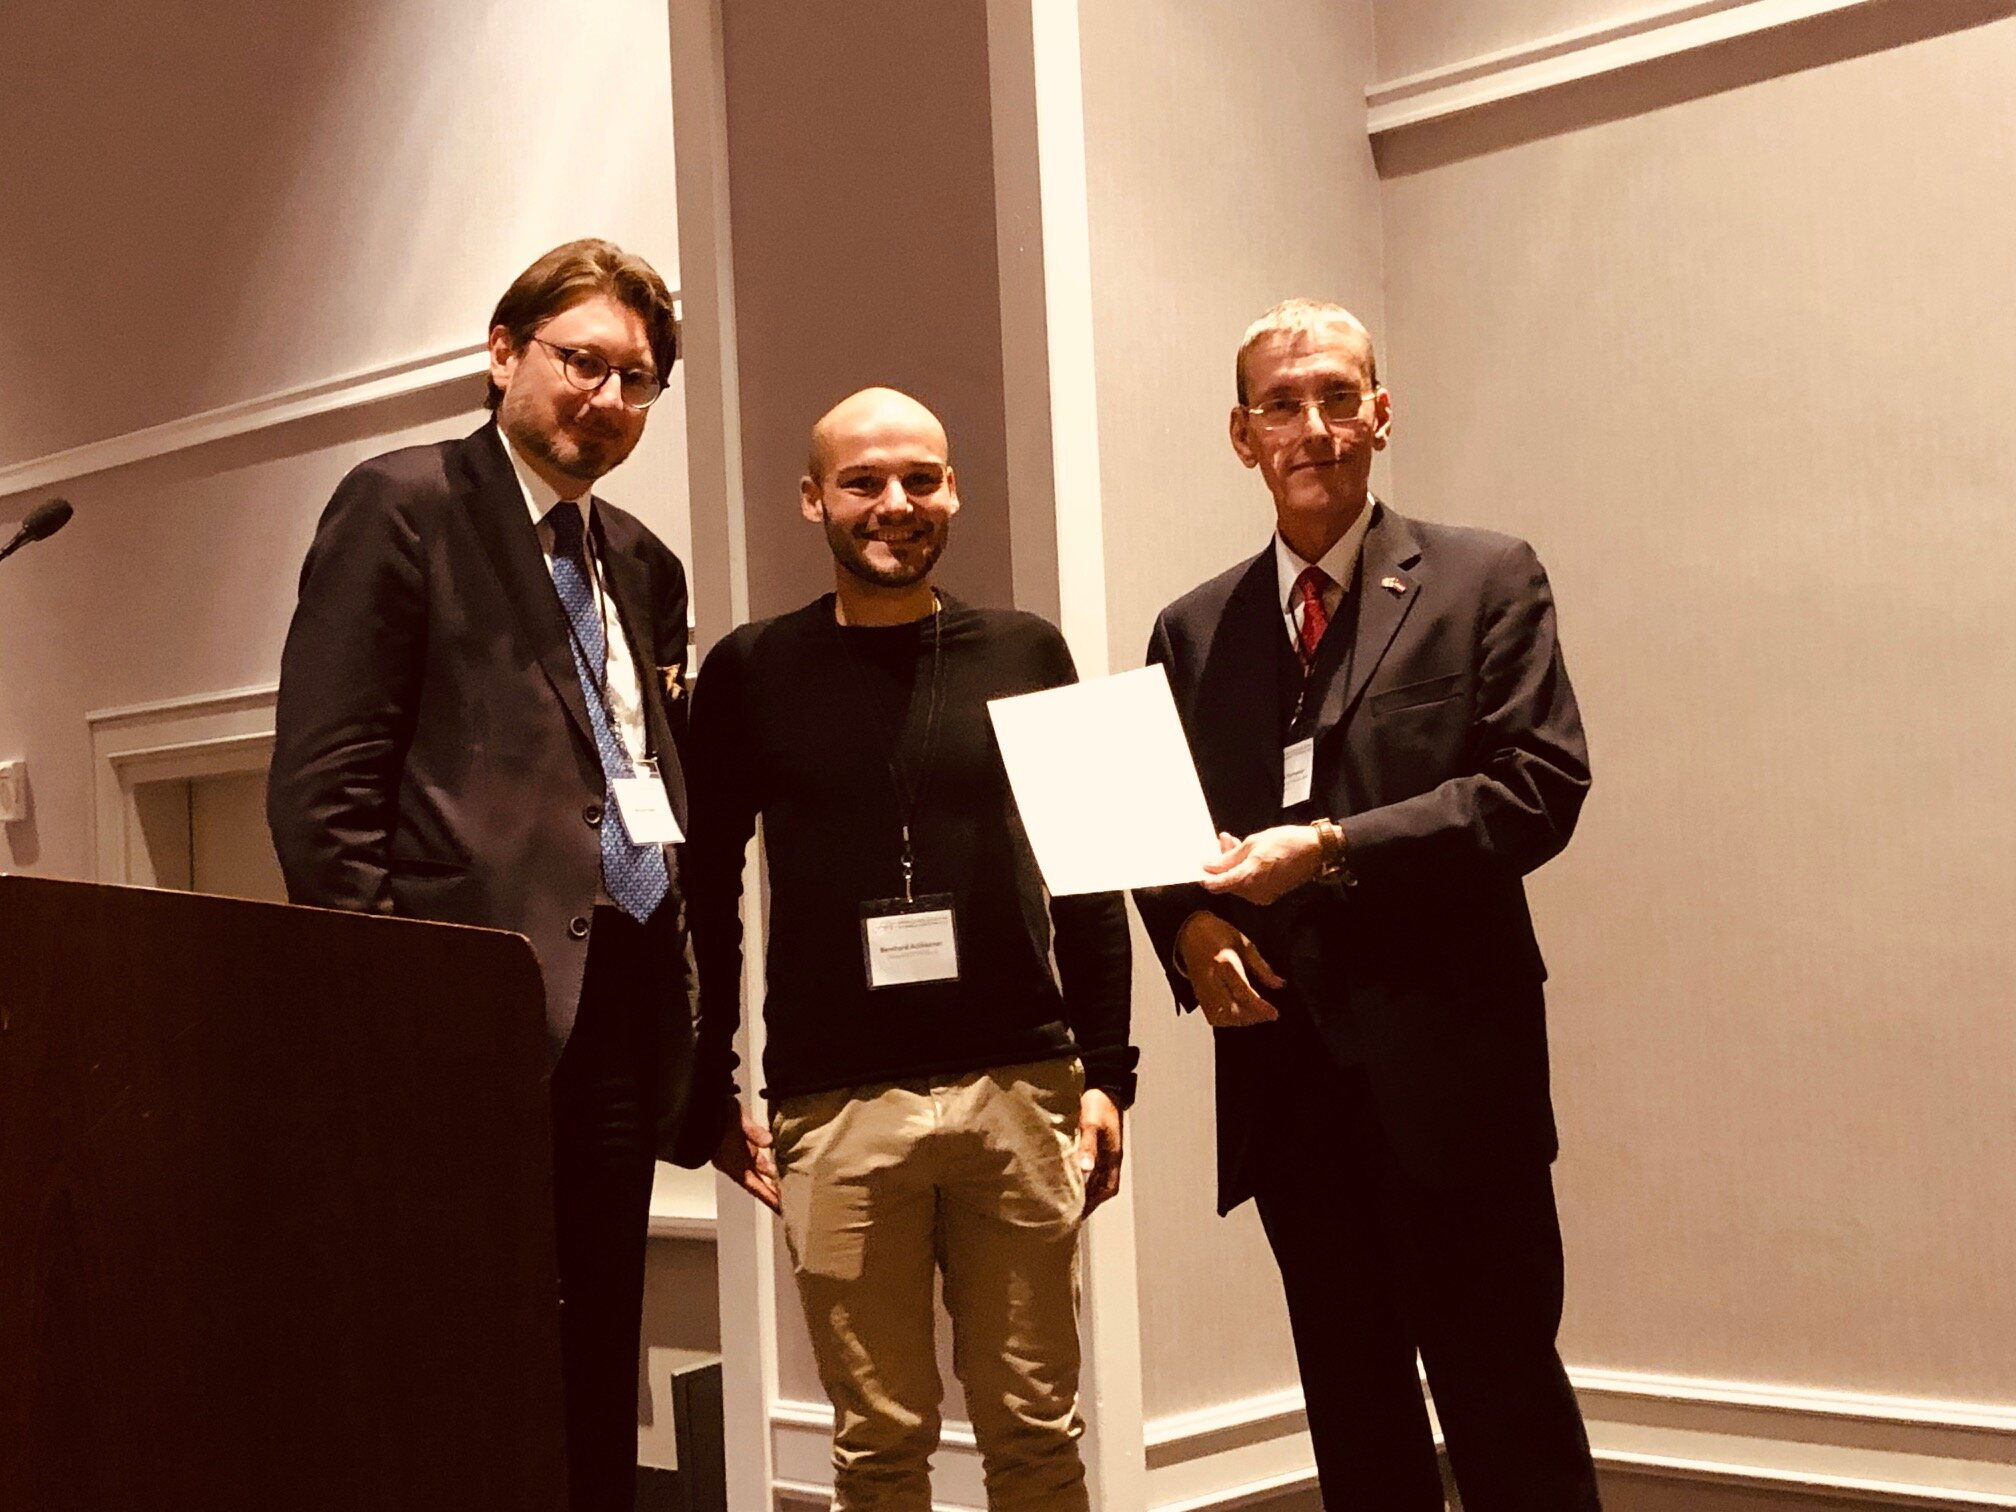 Dr. Michael Haider, Director of the Austrian Cultural Forum New York (left), and Dr. Christoph Ramoser, Head of the Science Ministry's International Department (right), present a grant to the University of Innsbruck's Bernhard Achhorner.